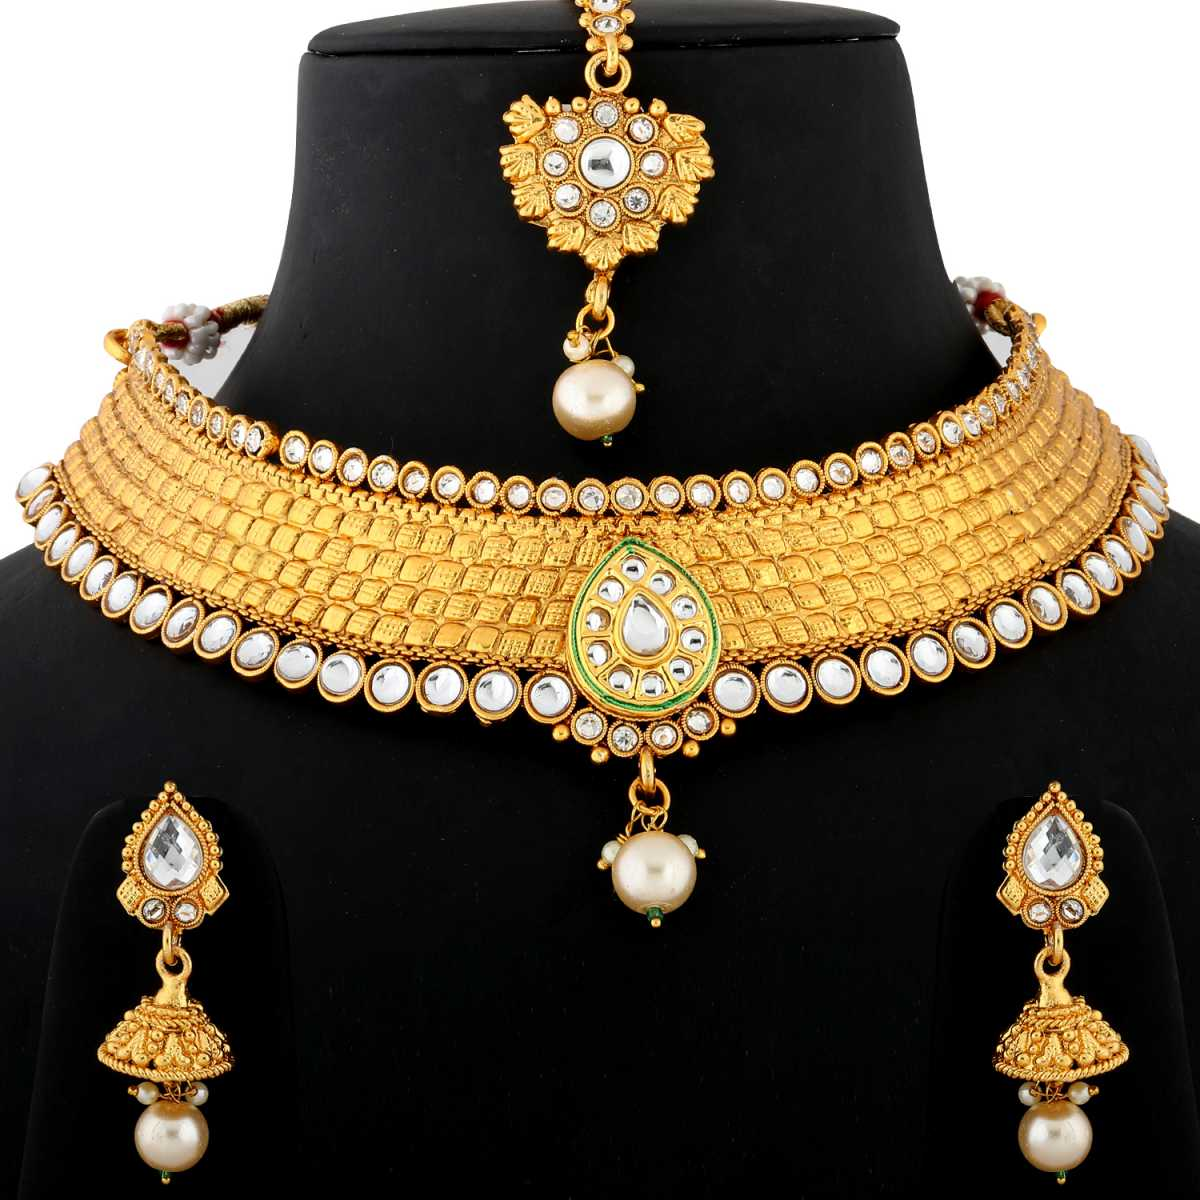 Silver Shine Exlusive Gold Plated Traditional Party Wear Single line Self Textured Diamond Studded Pearl Drop Designer Wedding Necklace jewellery set for Girls And Women